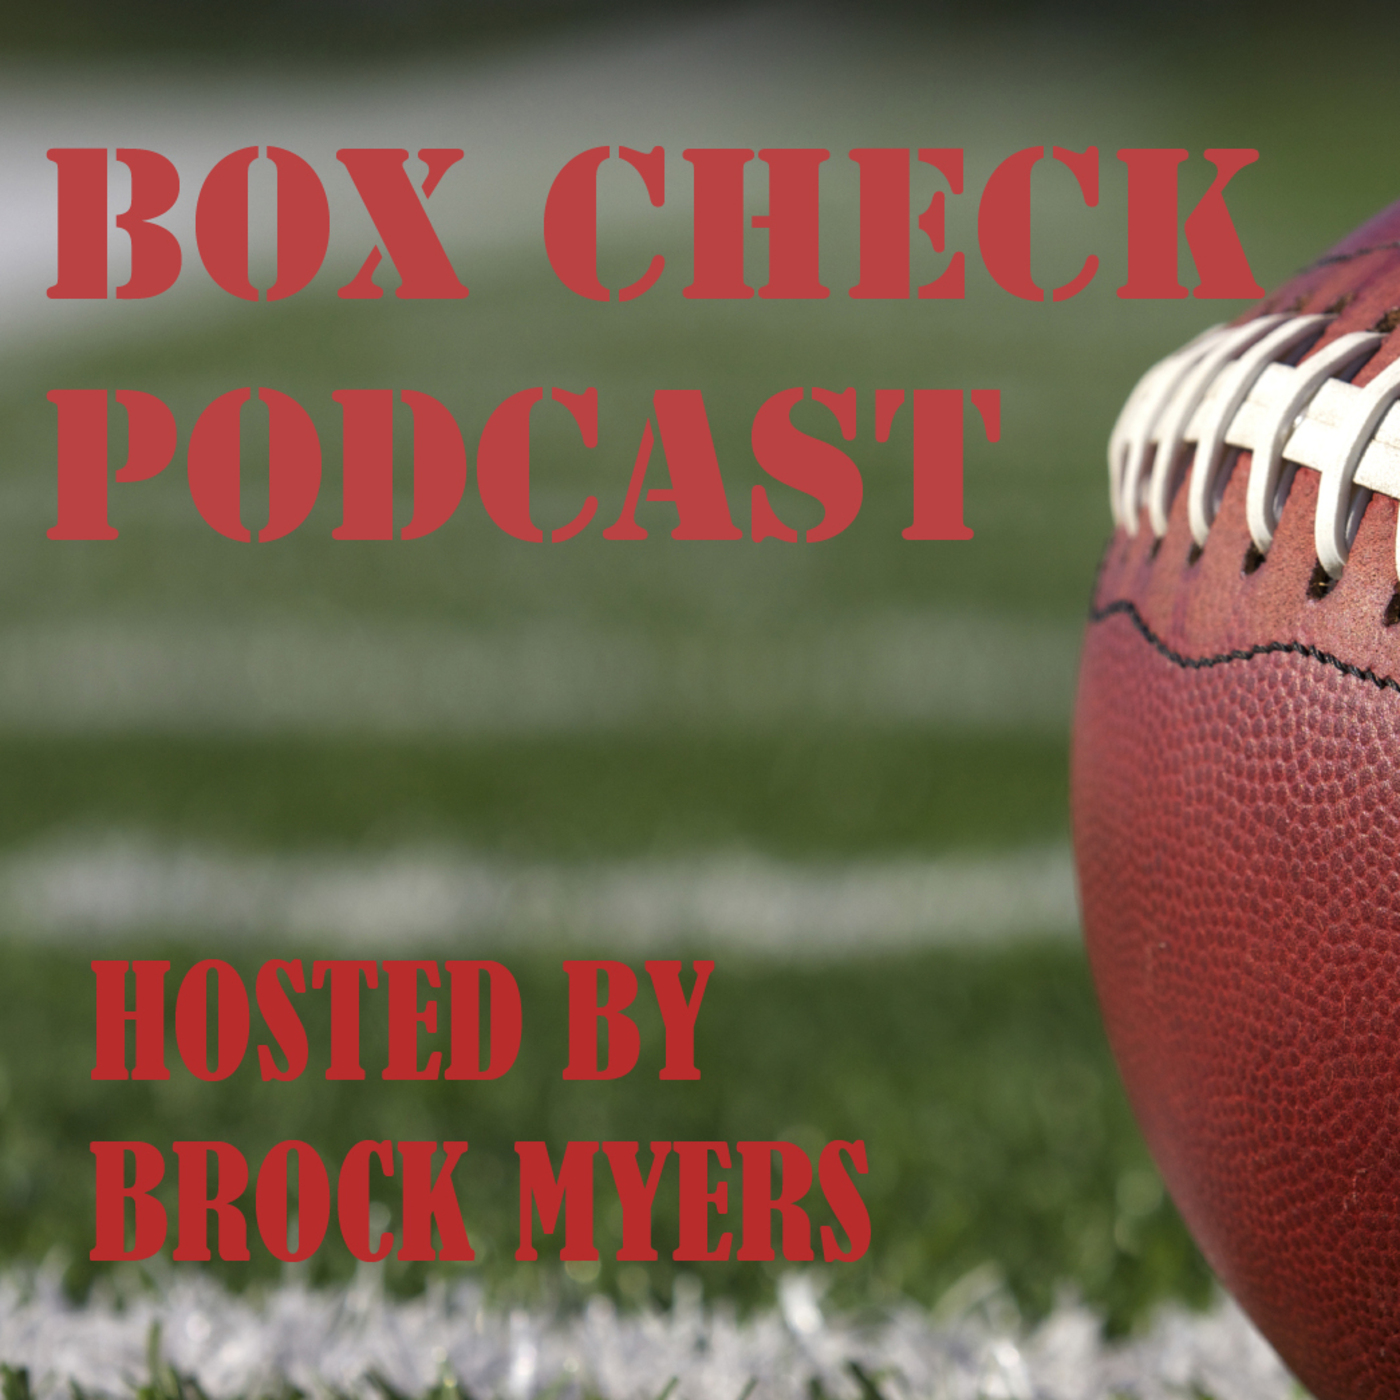 Box Check Podcast